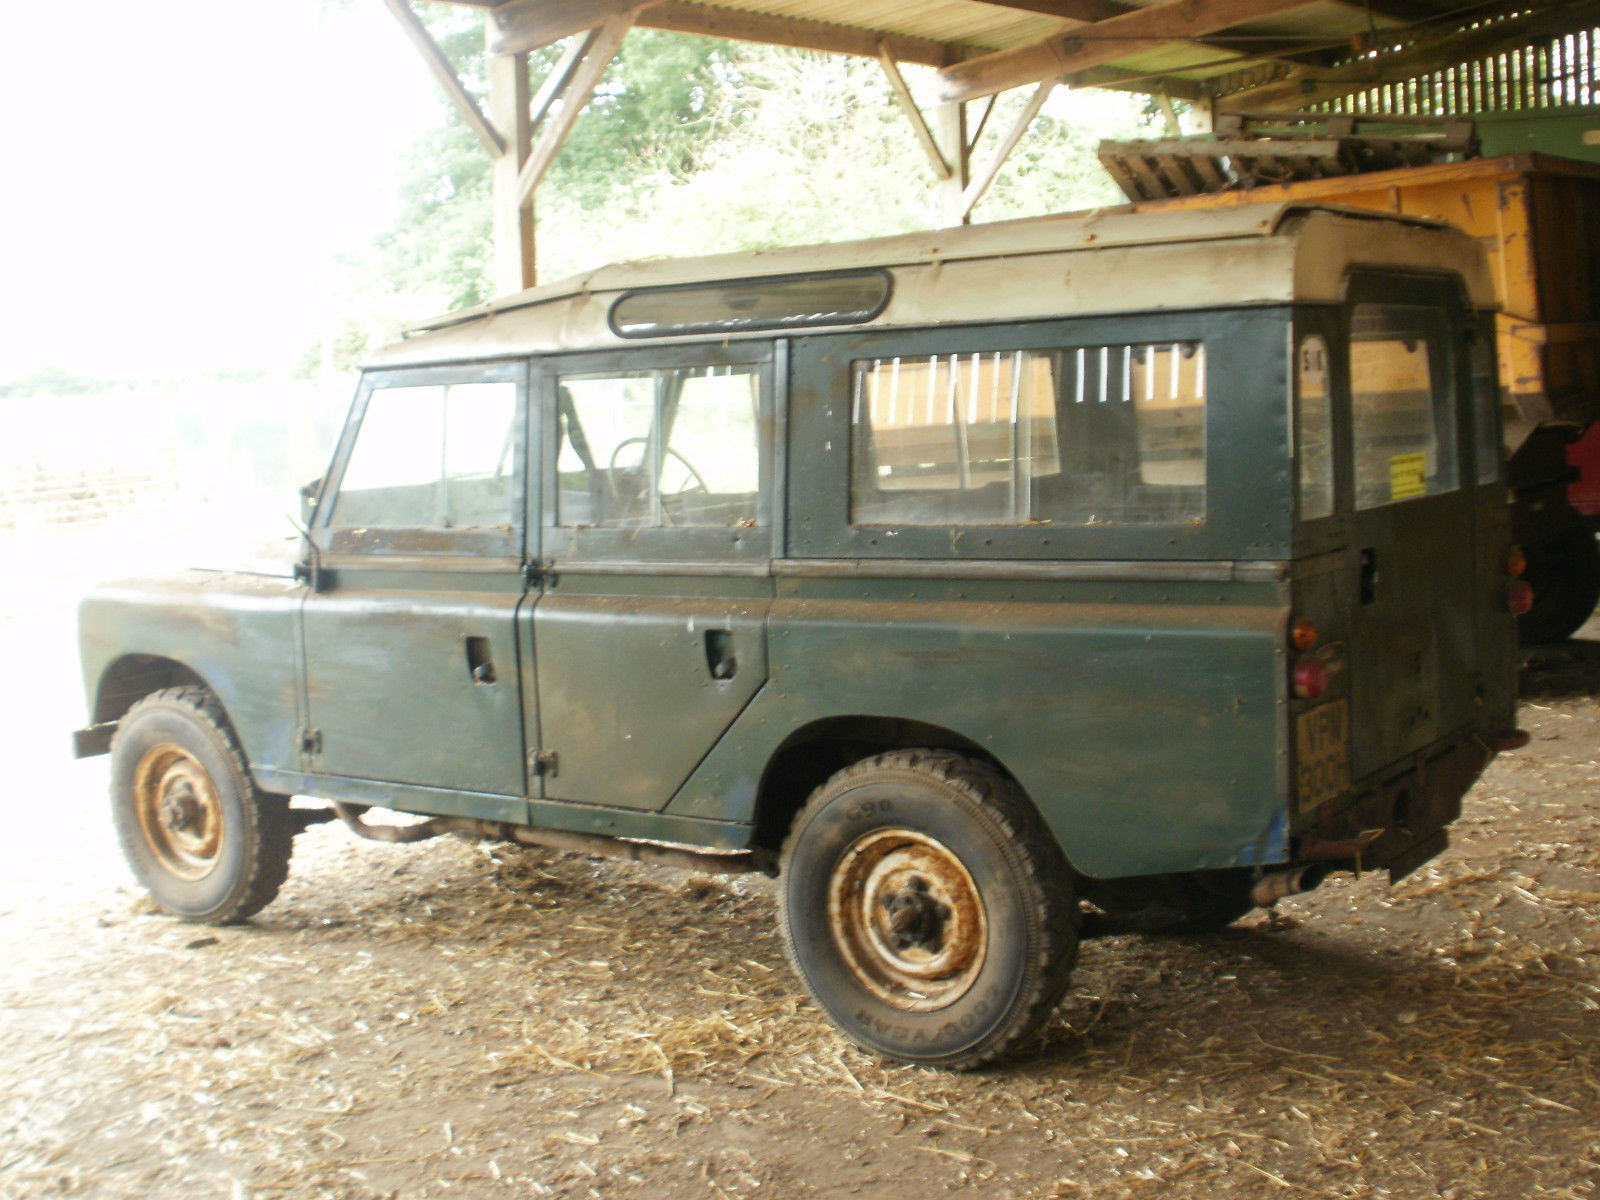 Barn Find 1970 Land Rover Series 2A Station Wagon 4x4 Cars